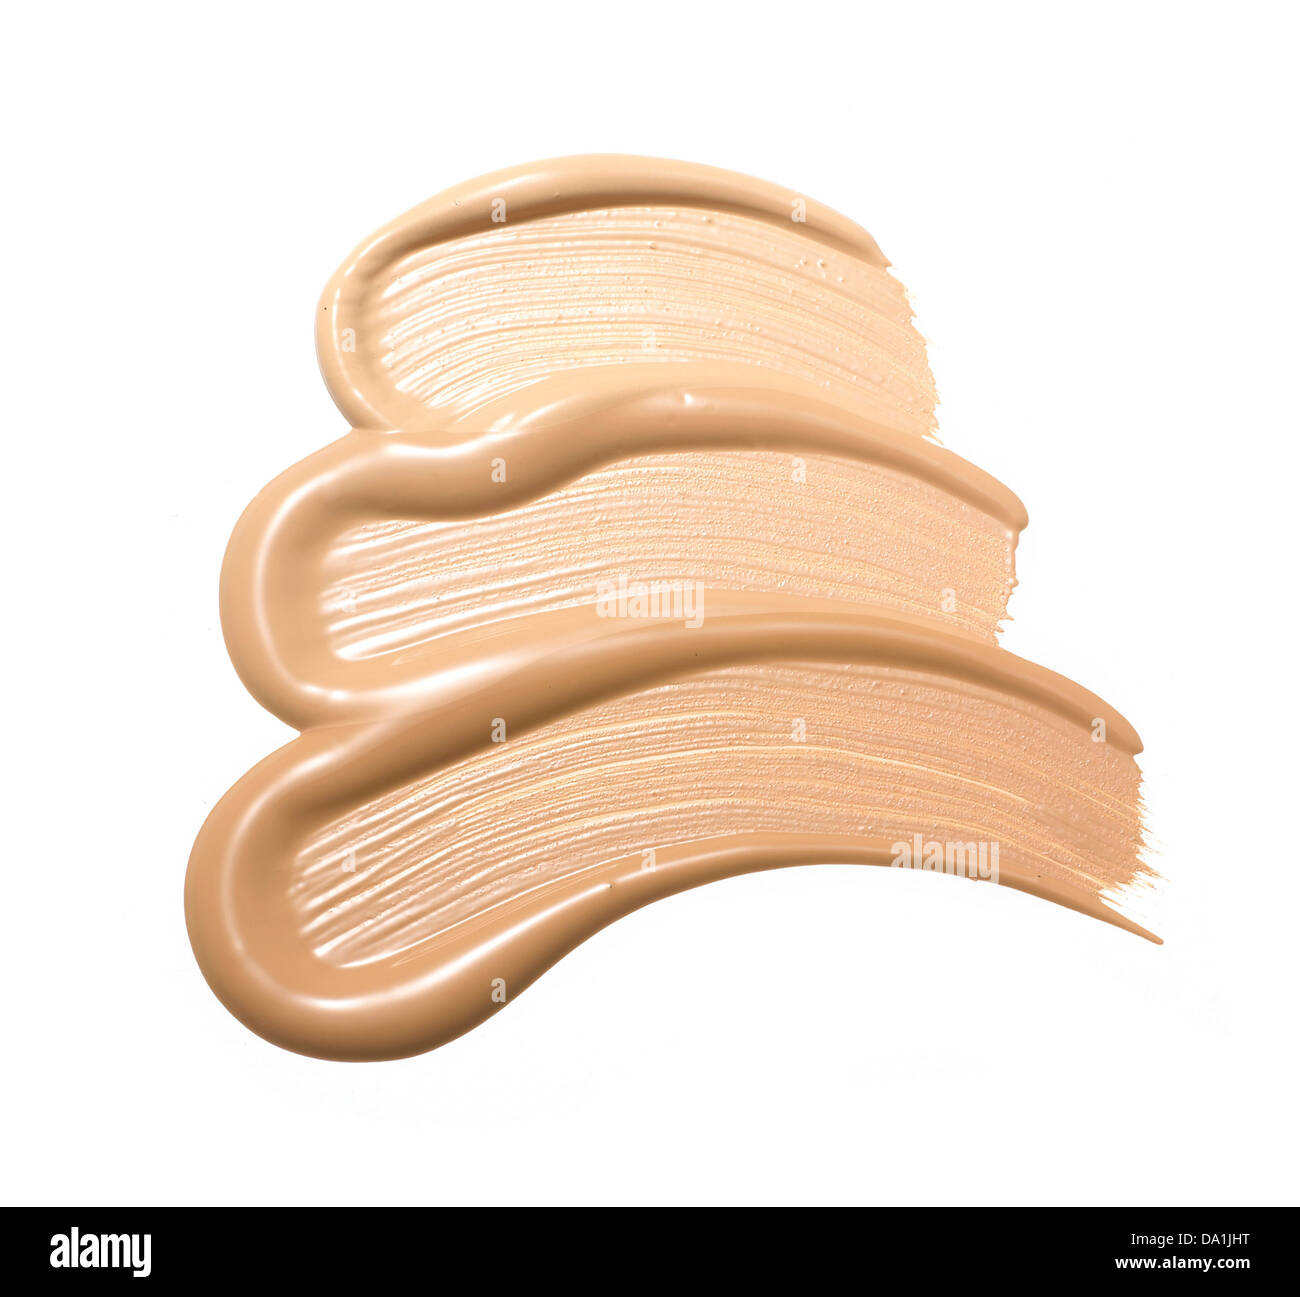 sweep of foundation makeup cut out onto a white background - Stock Image